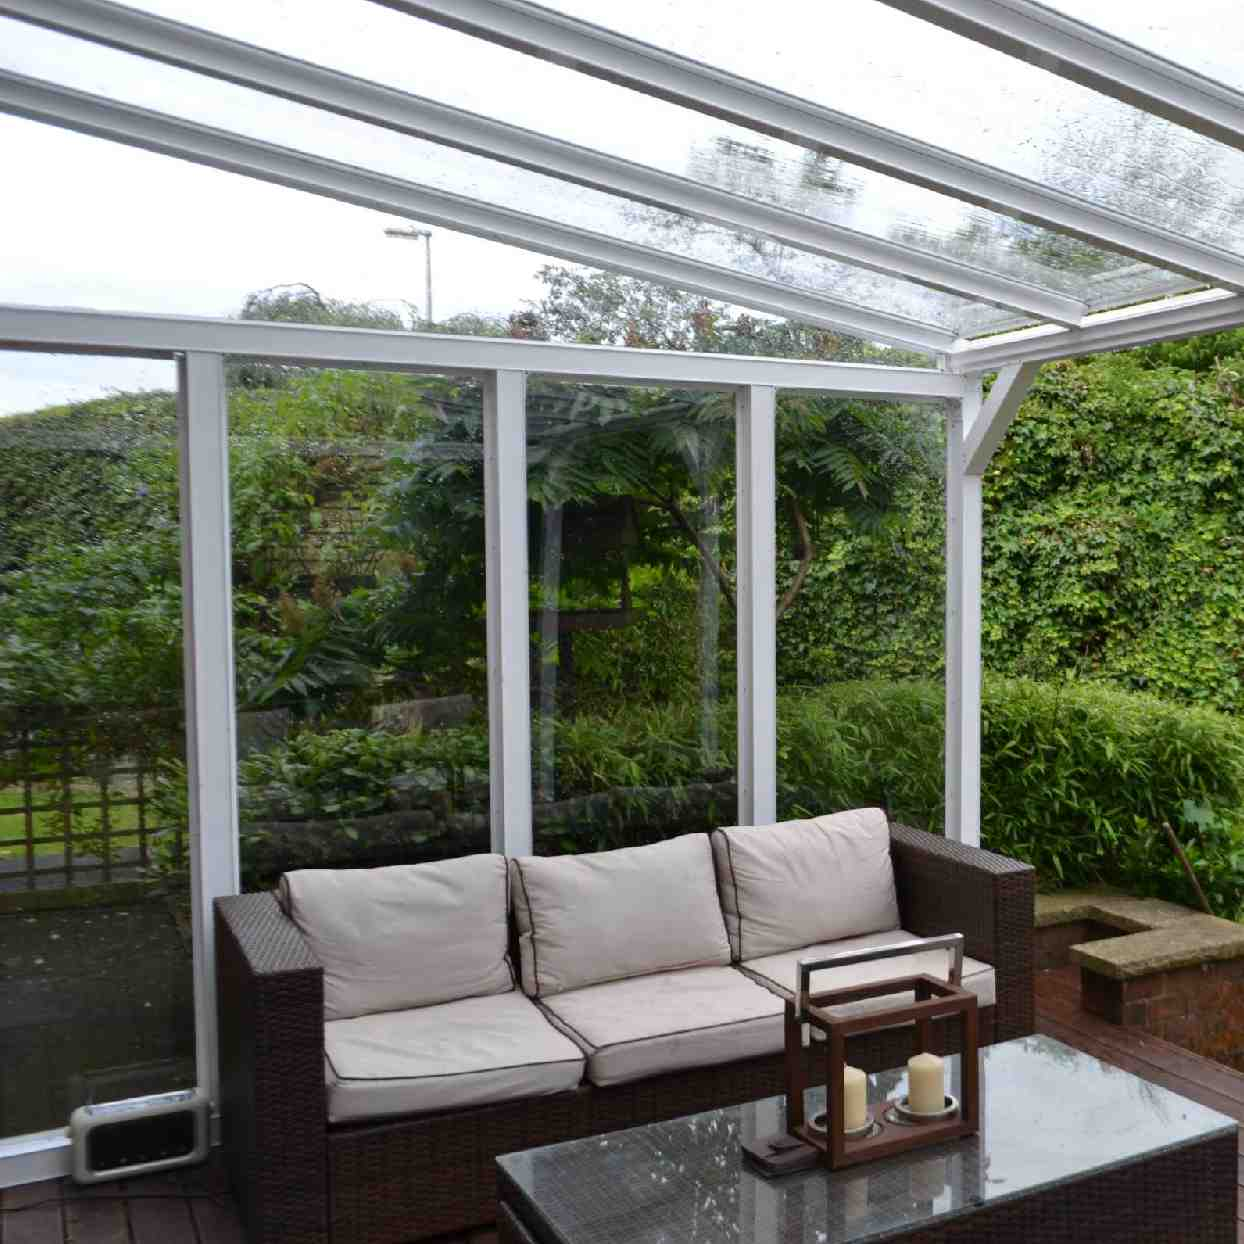 Buy Omega Verandah with 6mm Glass Clear Plate Polycarbonate Glazing - 7.0m (W) x 2.0m (P), (4) Supporting Posts online today